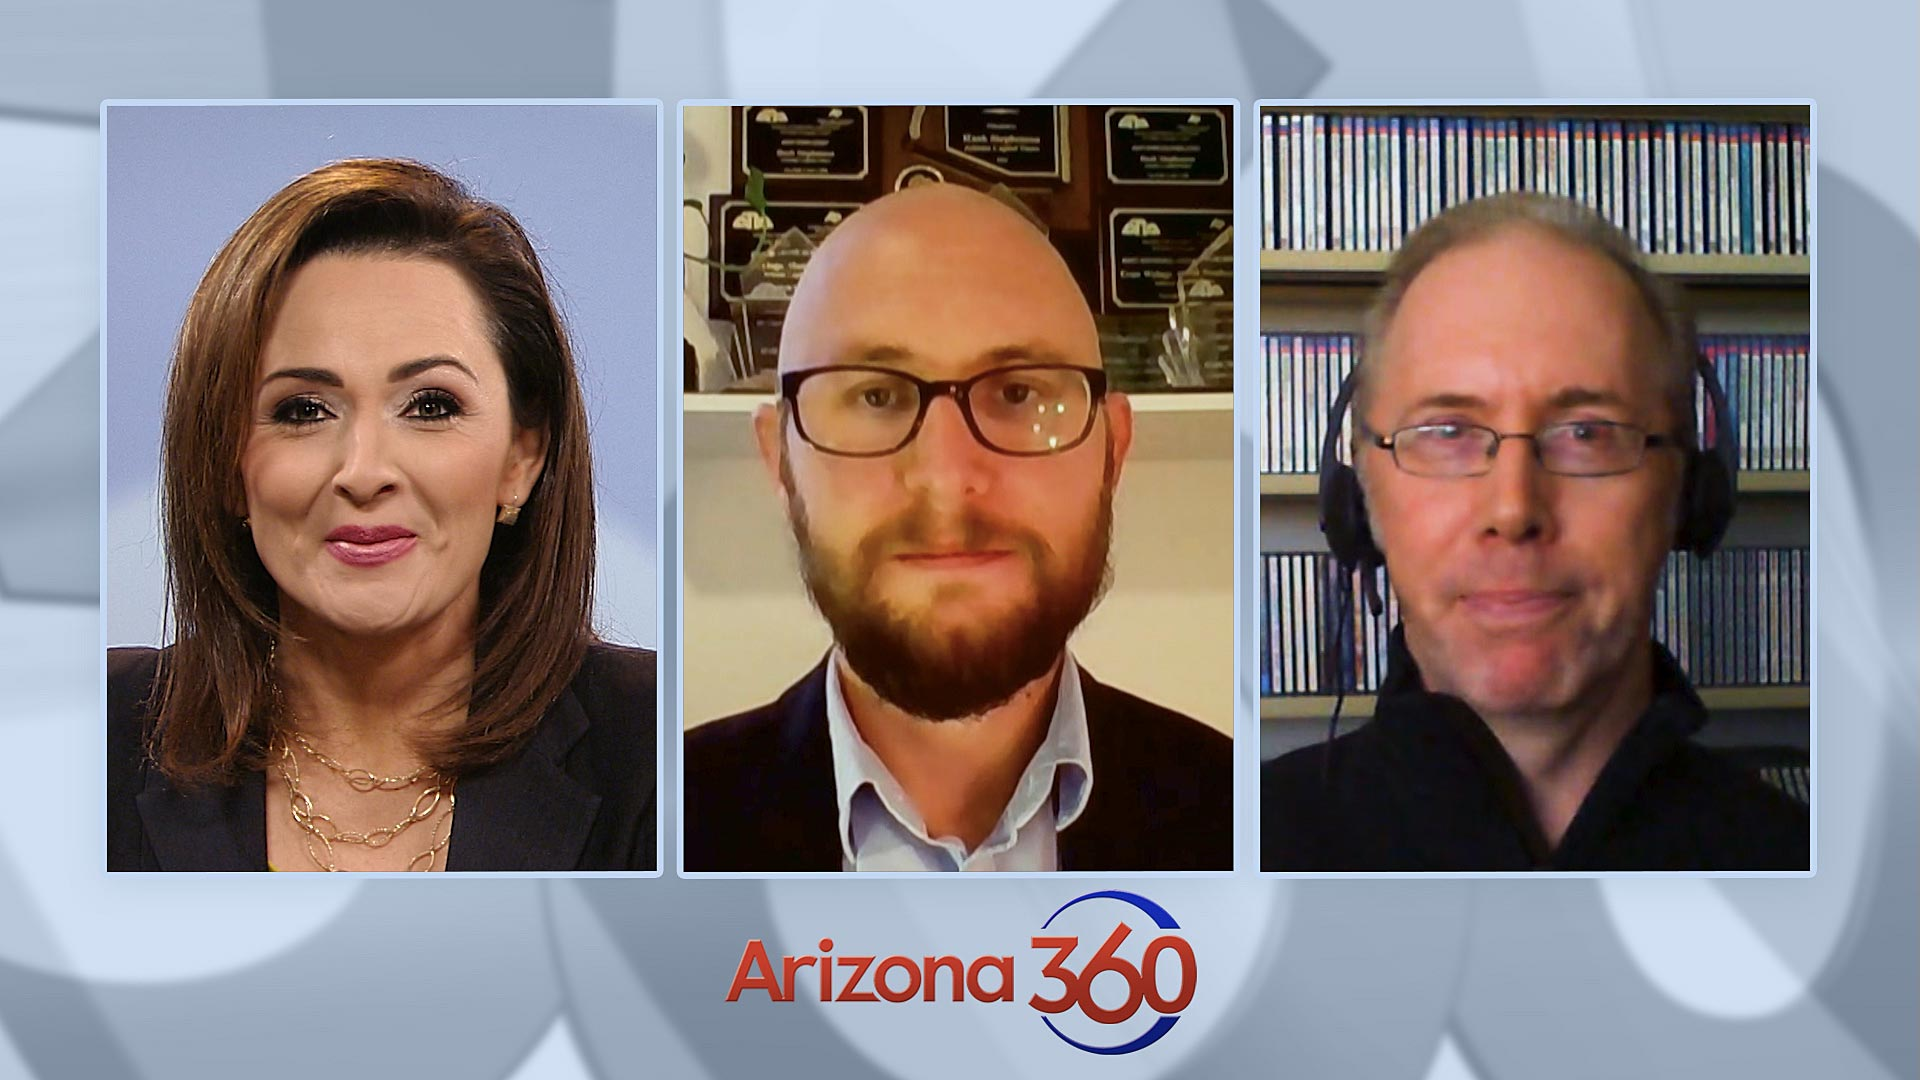 The Yellow Sheet's Hank Stephenson (center) and KJZZ's Steve Goldstein (right) in an interview with Arizona 360 host Lorraine Rivera on Oct. 26, 2020.